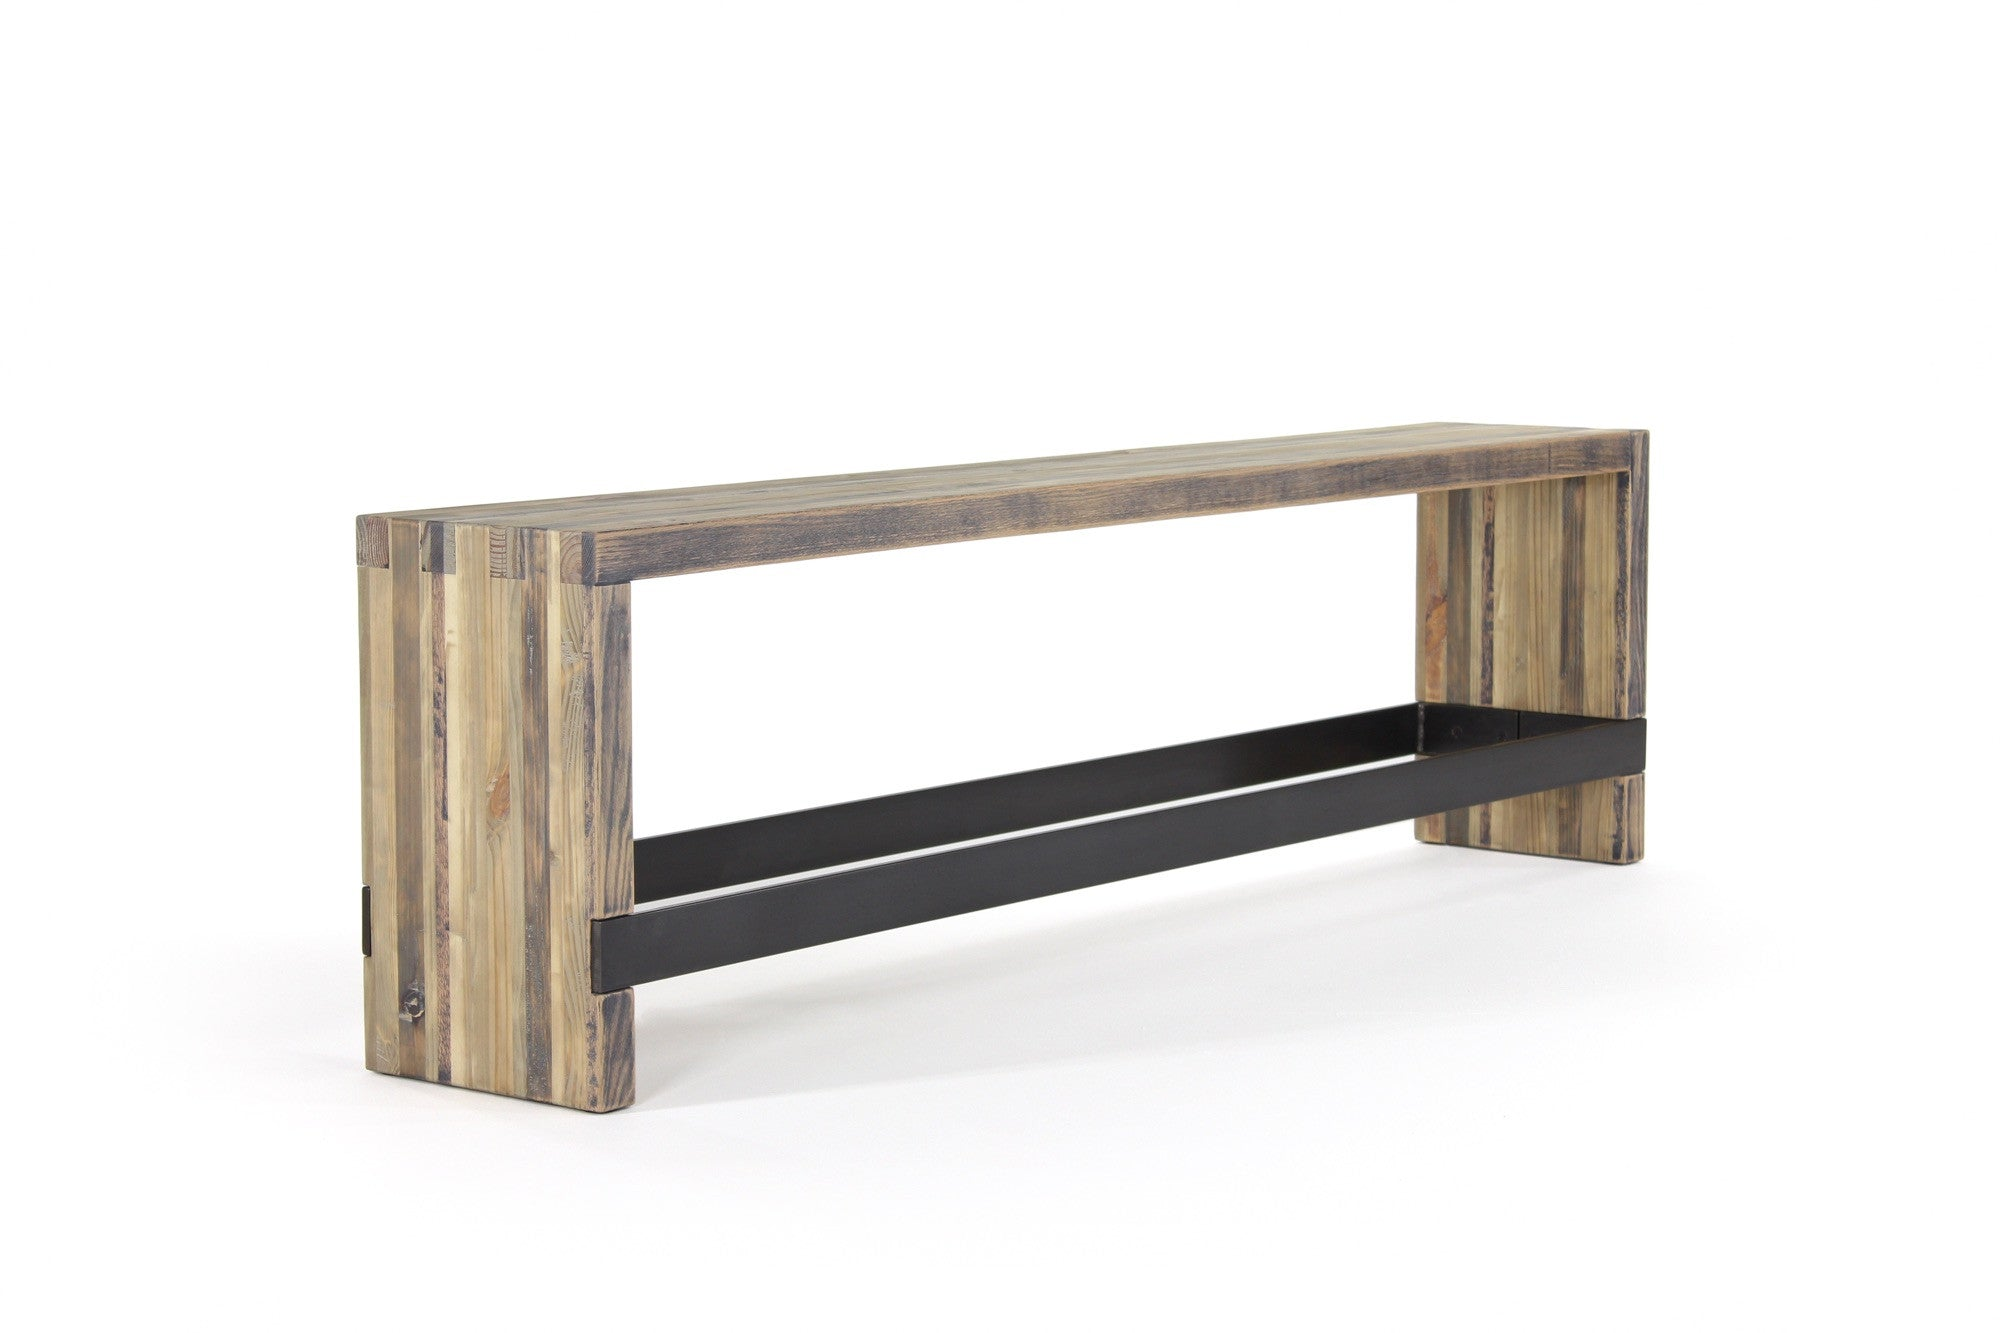 bento bar bench | aged wood finish with waxed steel